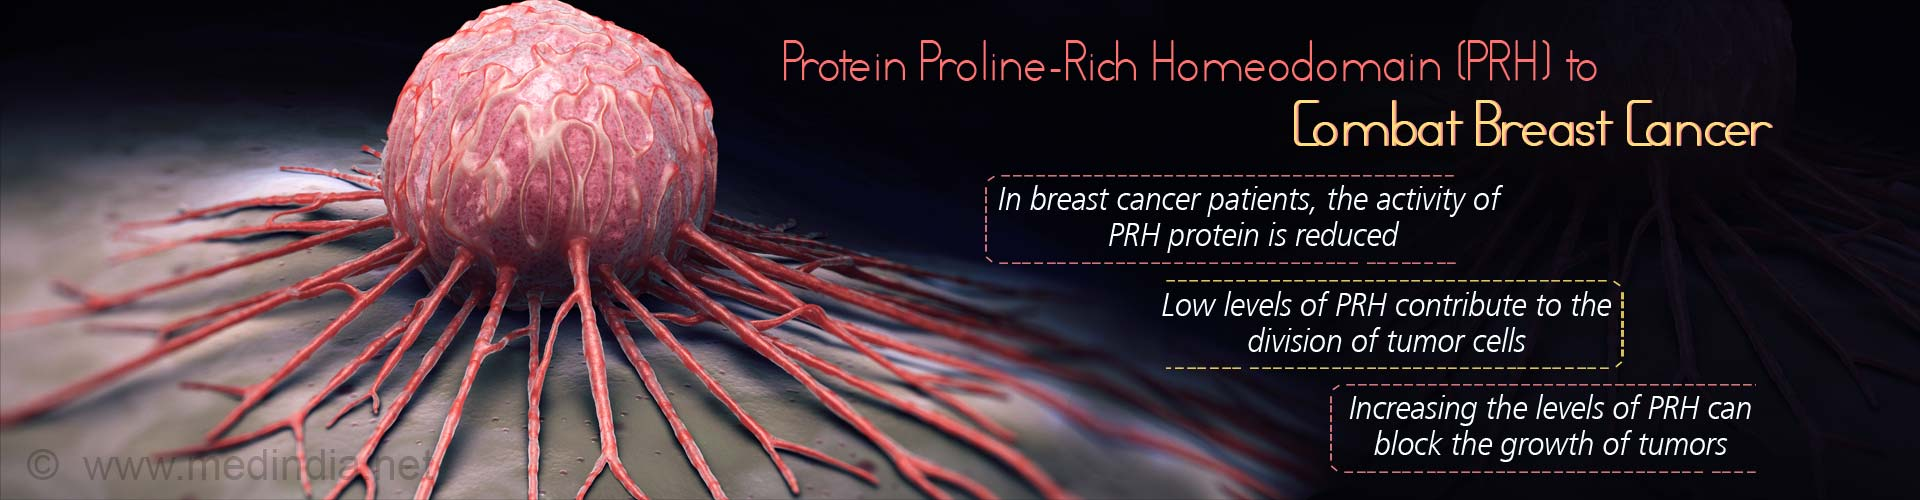 Protein proline-rich homeodomain (PRH) to combat breast cancer